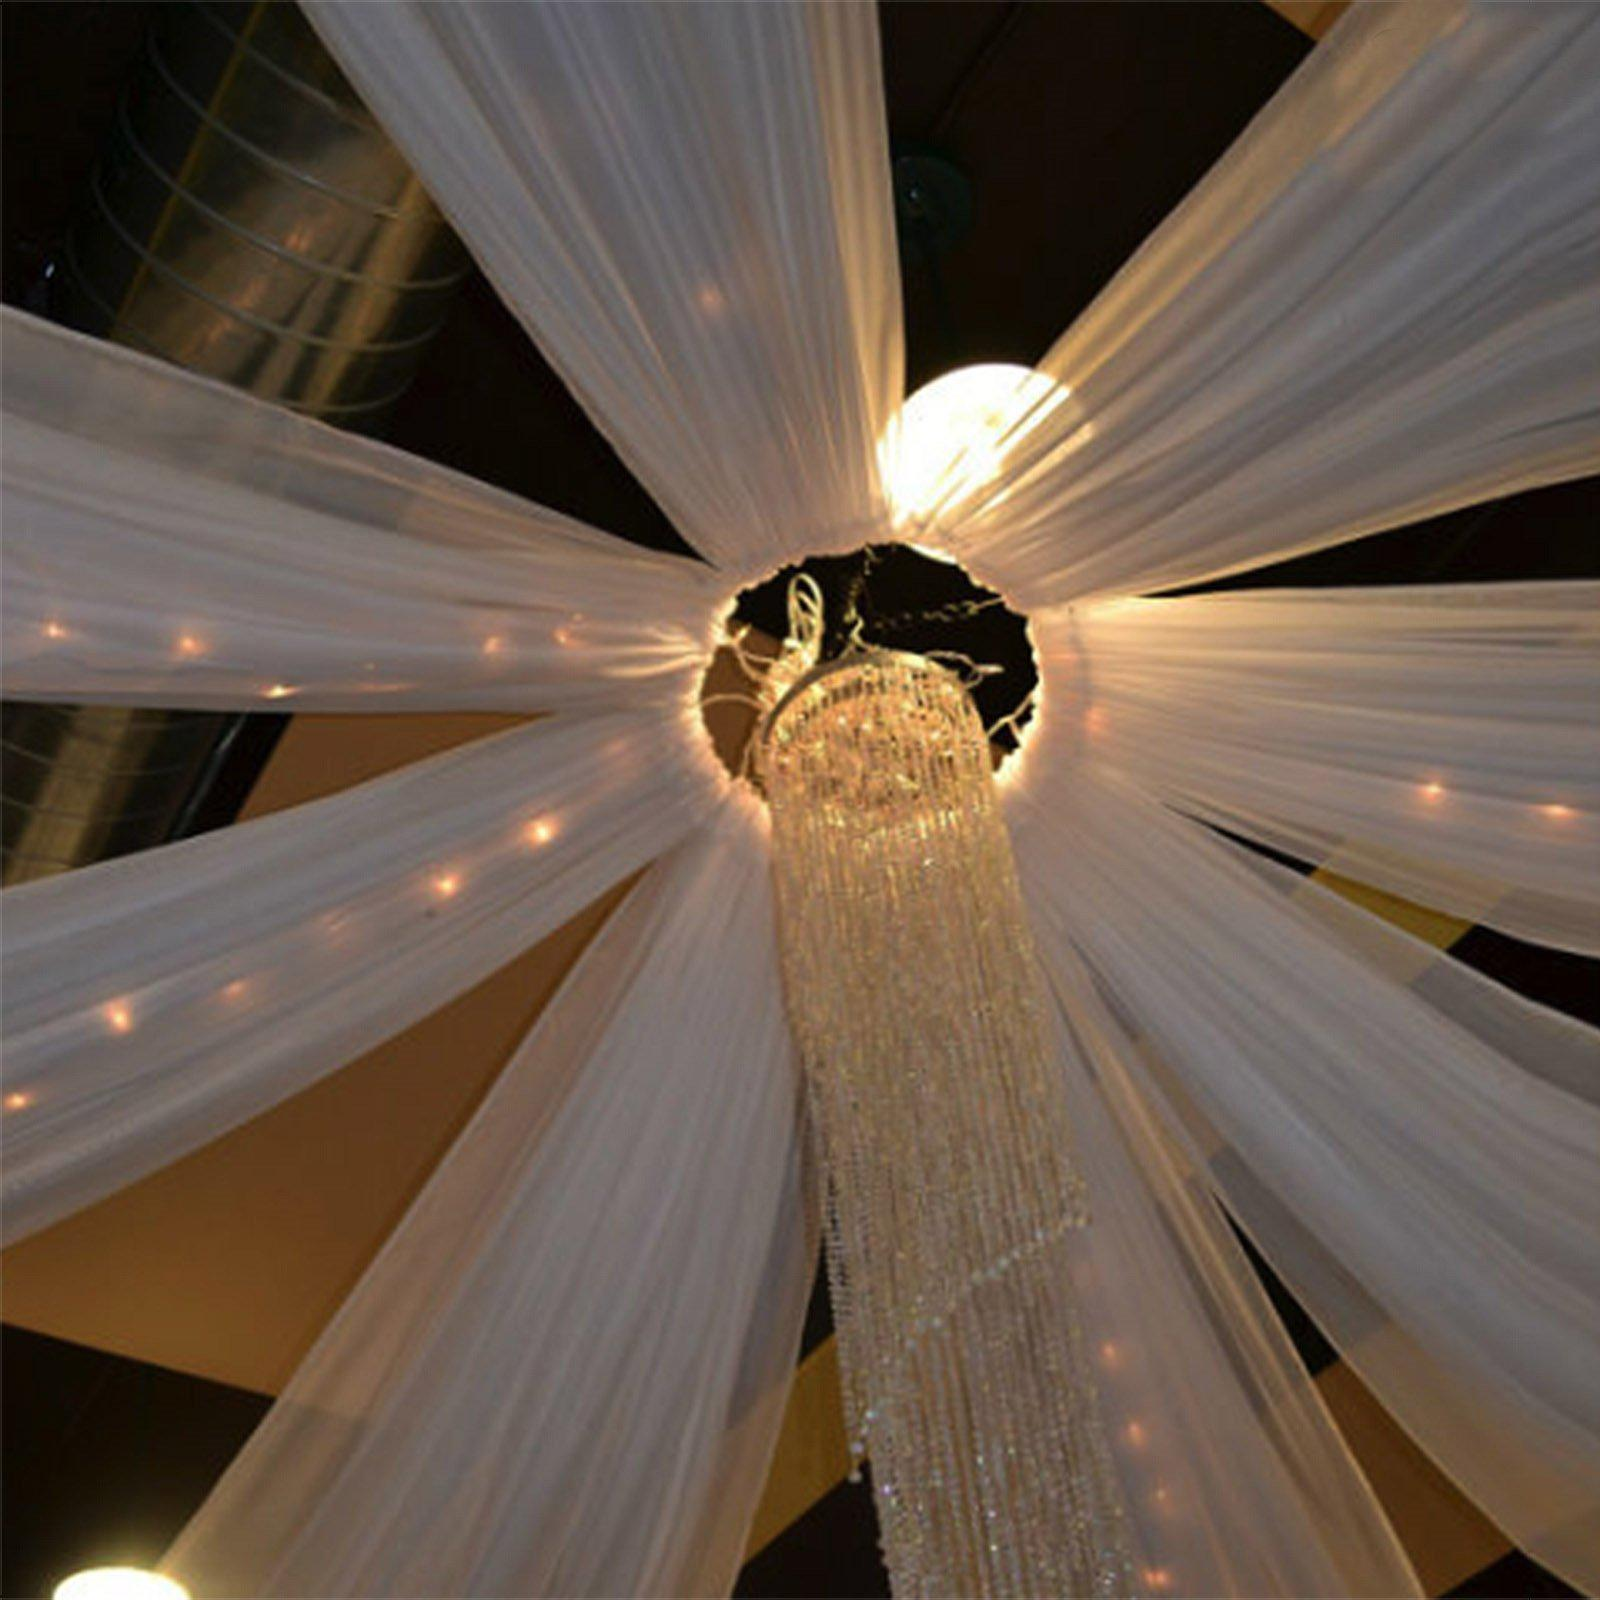 20ft White Ceiling Drapes Sheer Curtain Panels Fire Retardant Fabric With 4 Pocket Tableclothsfactory